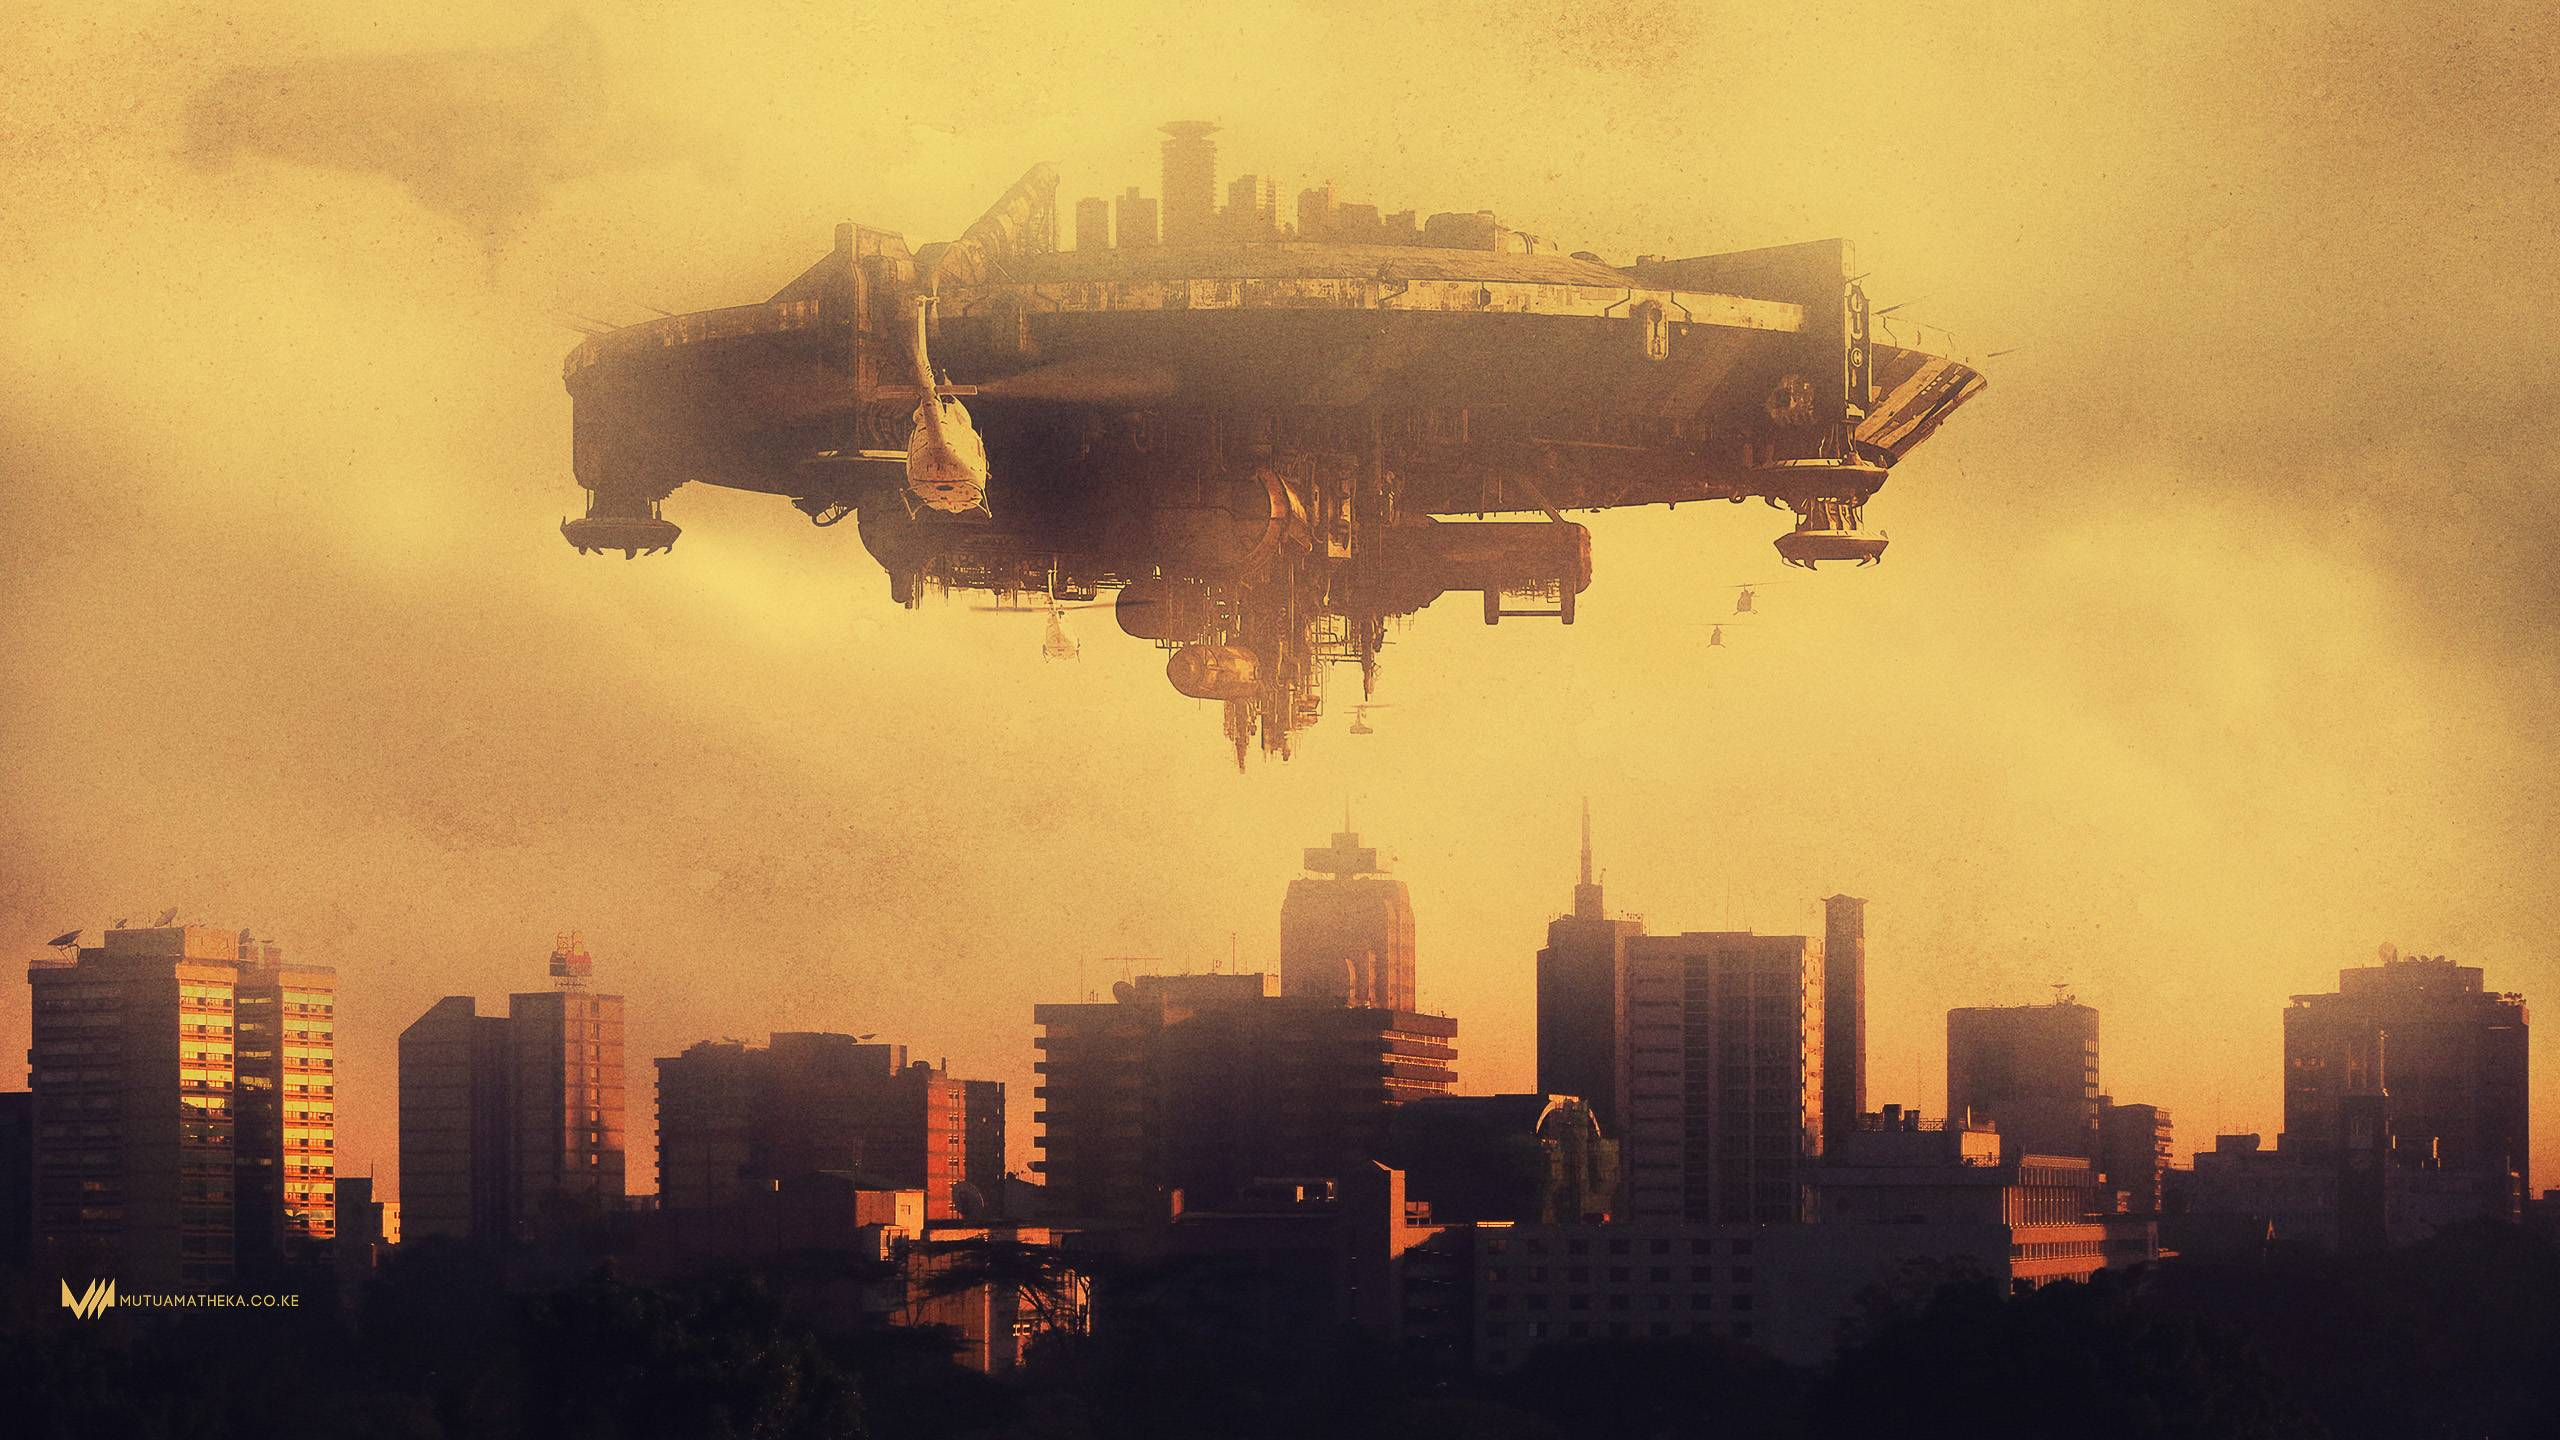 district 9 computer wallpapers - photo #4